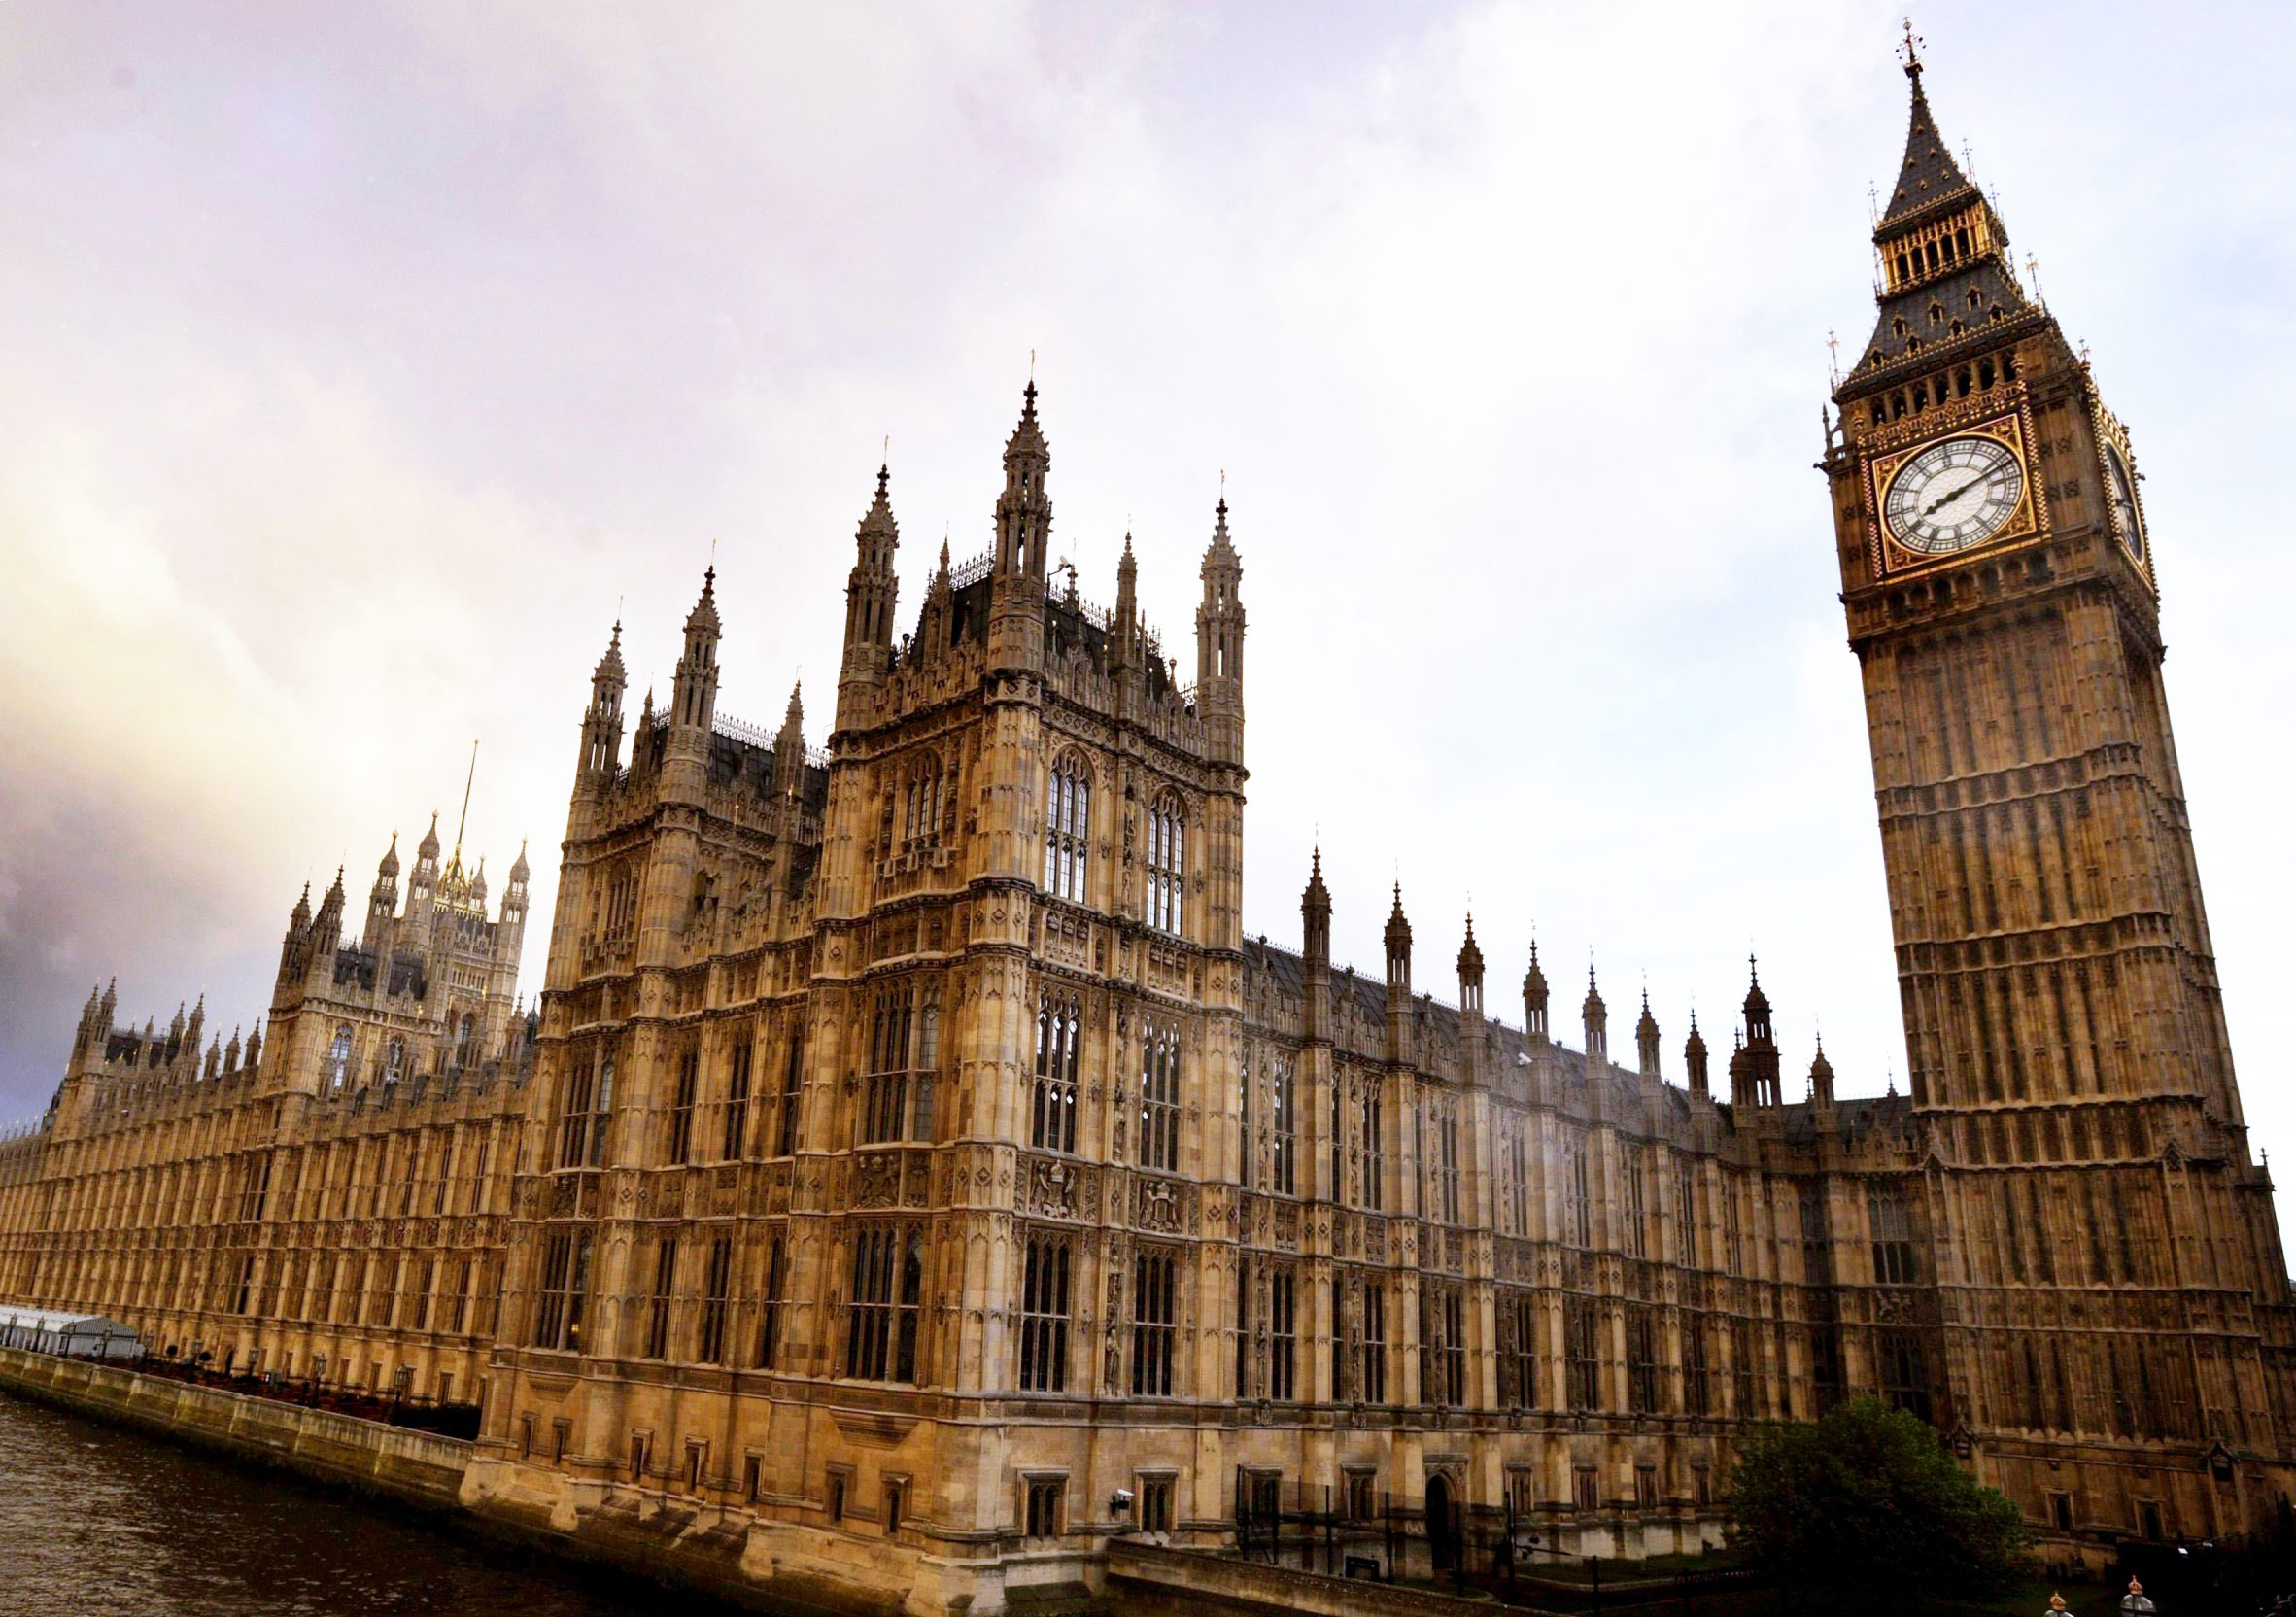 MPs don't think they should be handed a £6,000 pay increase